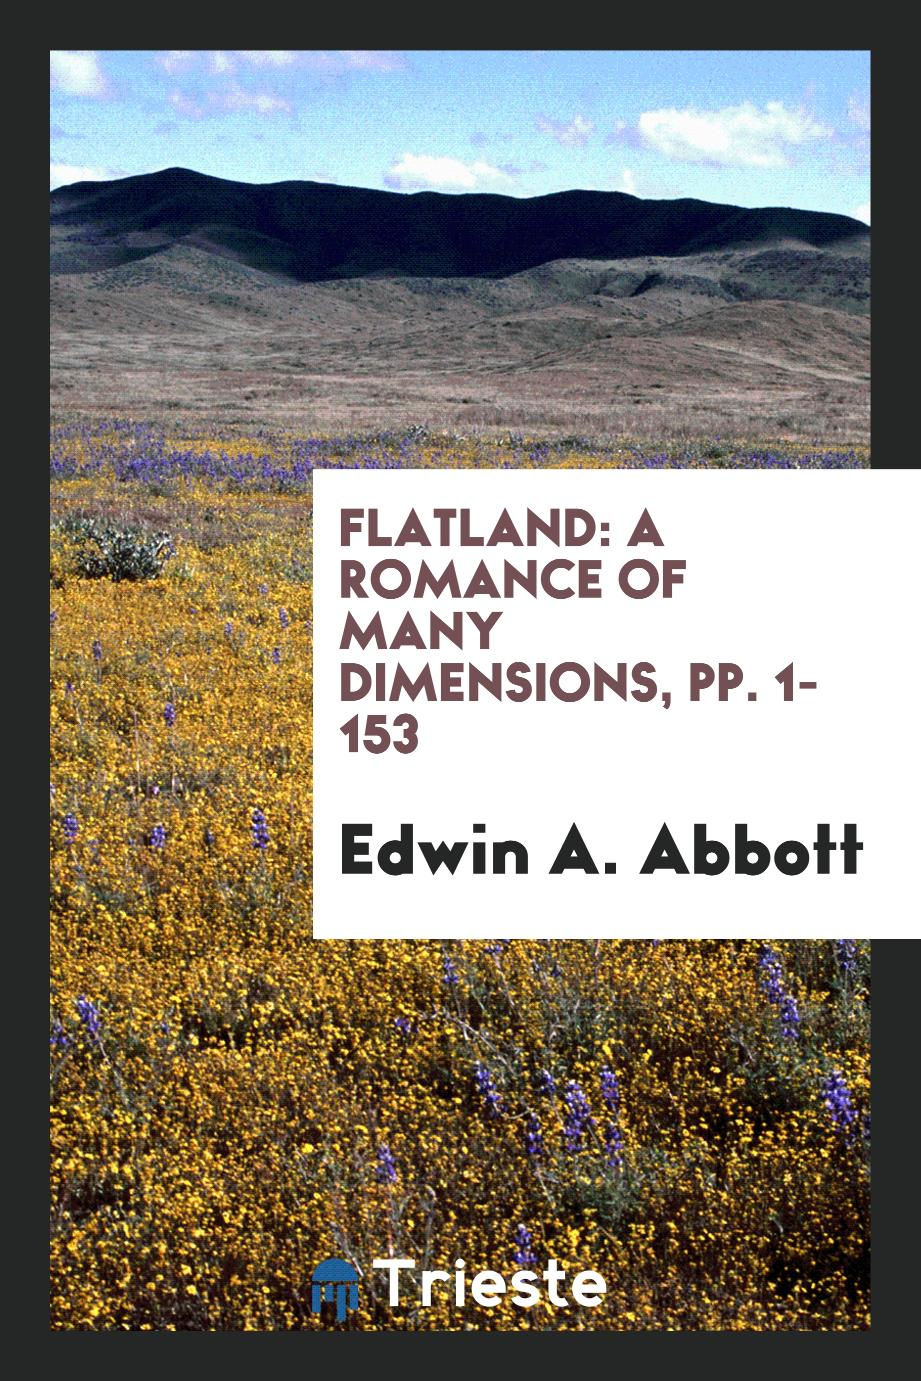 Flatland: A Romance of Many Dimensions, pp. 1-153